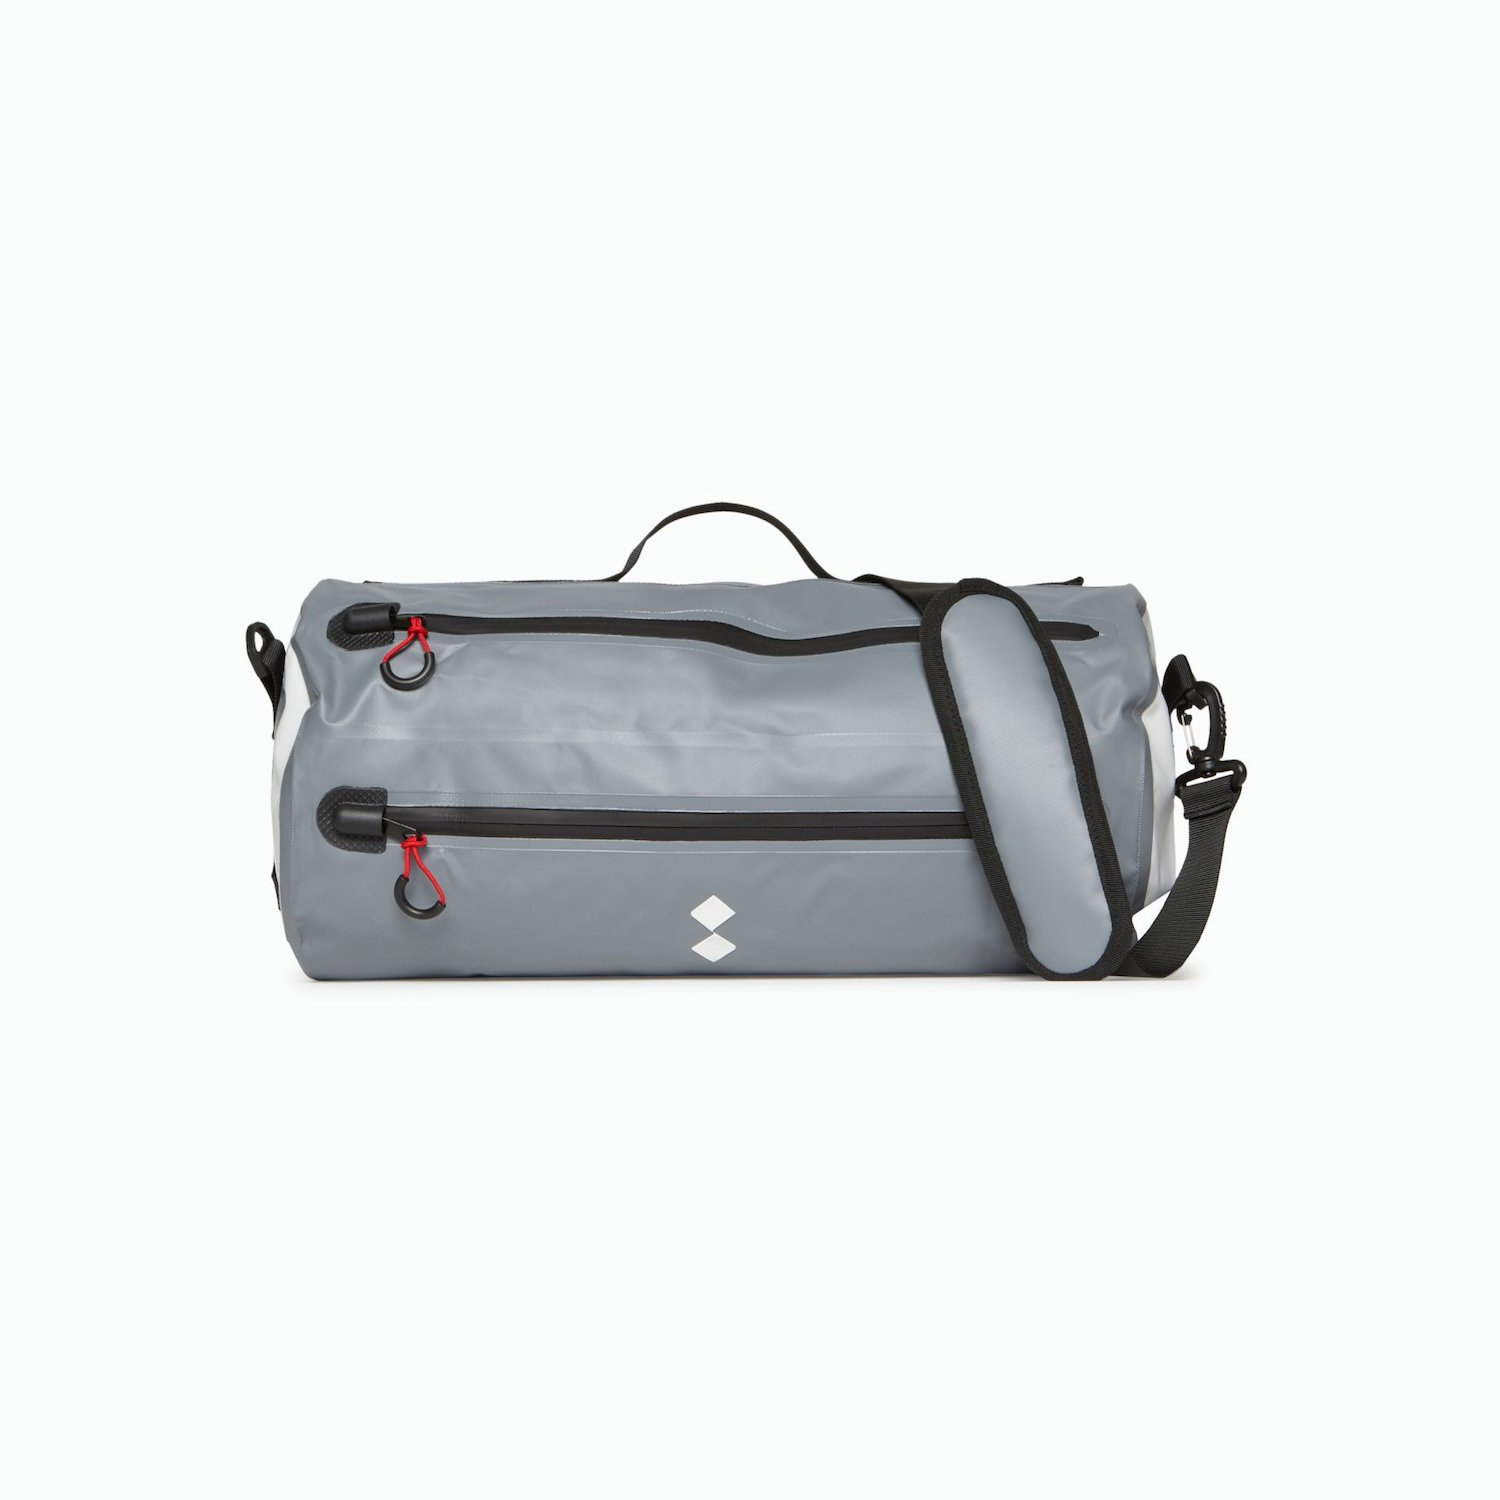 Wr bag 2 evolution - Grey Shark